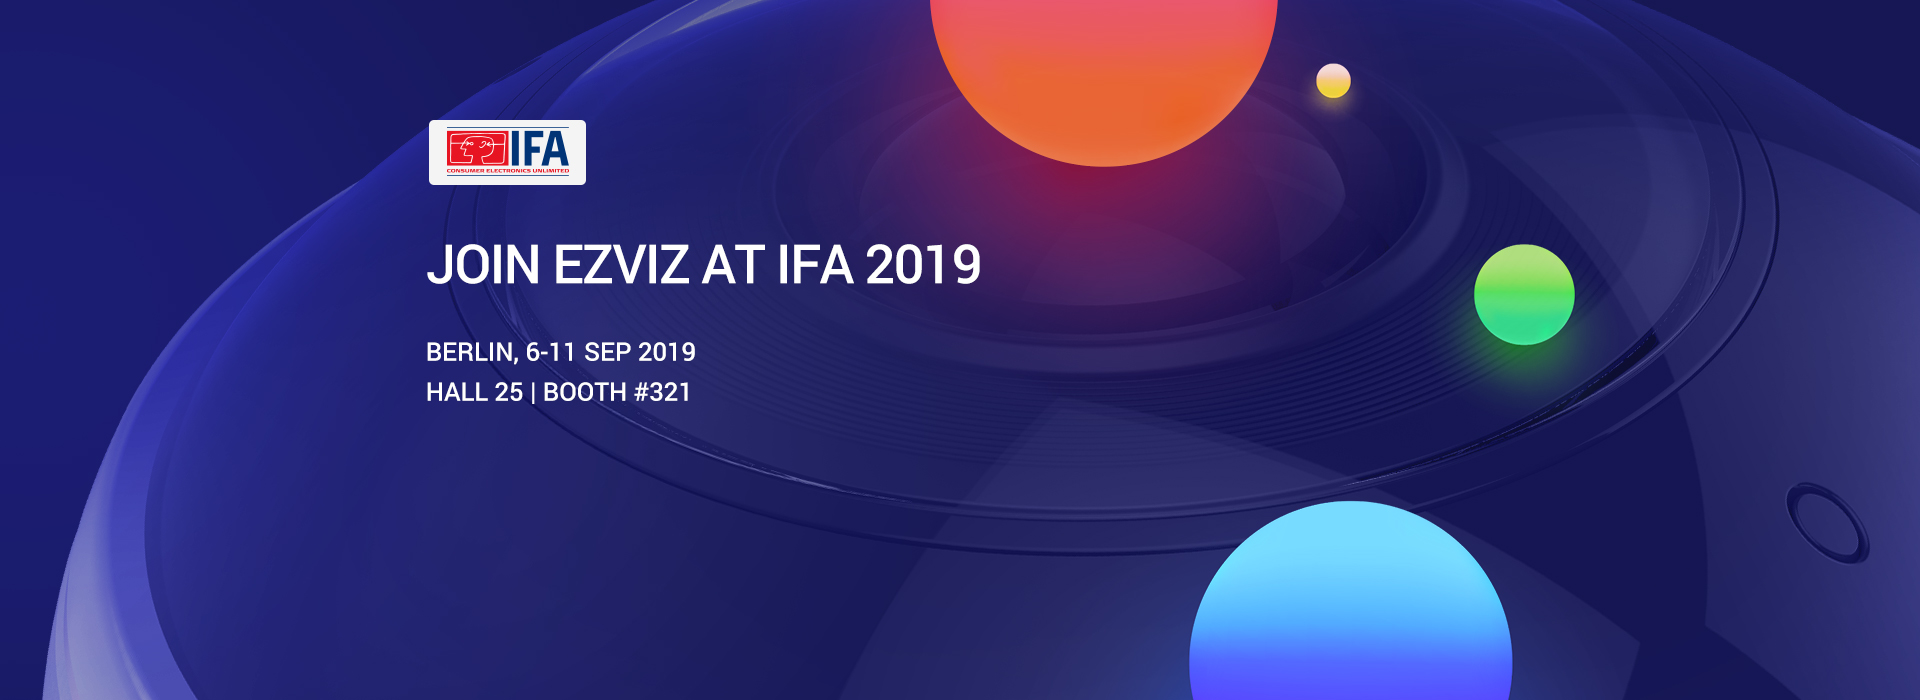 EZVIZ at IFA 2019